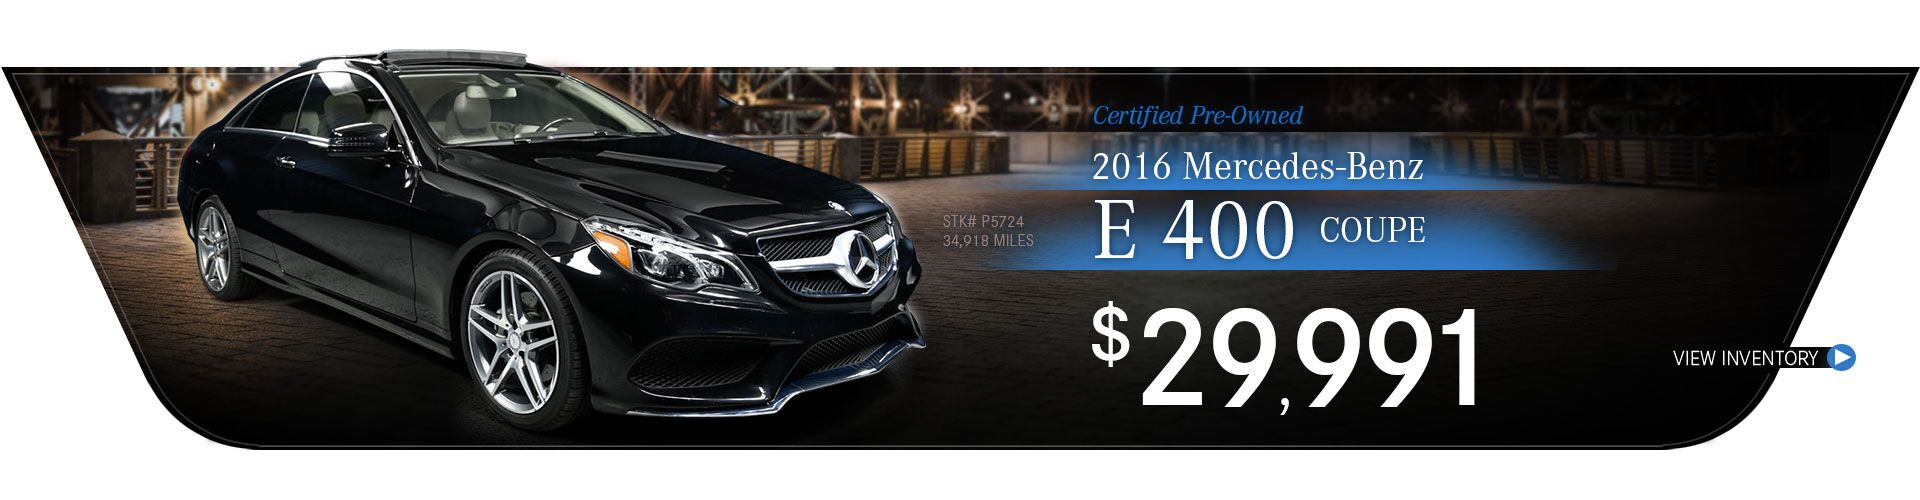 2016 Mercedes-Benz Certified Pre-Owned E 400 Coupe